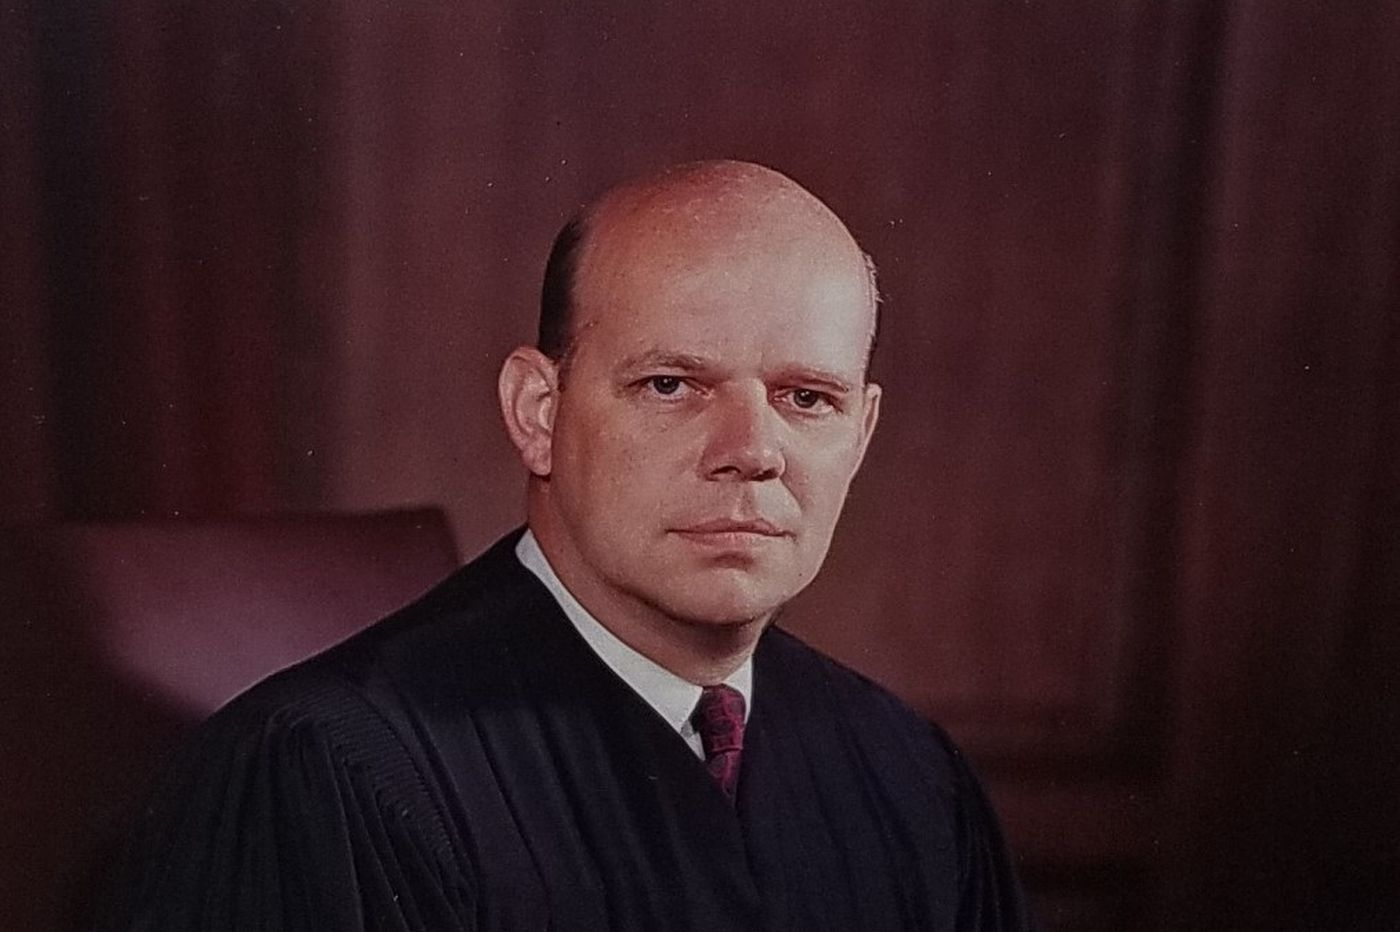 William W. Vogel, 92, former president judge of the Montgomery County Court